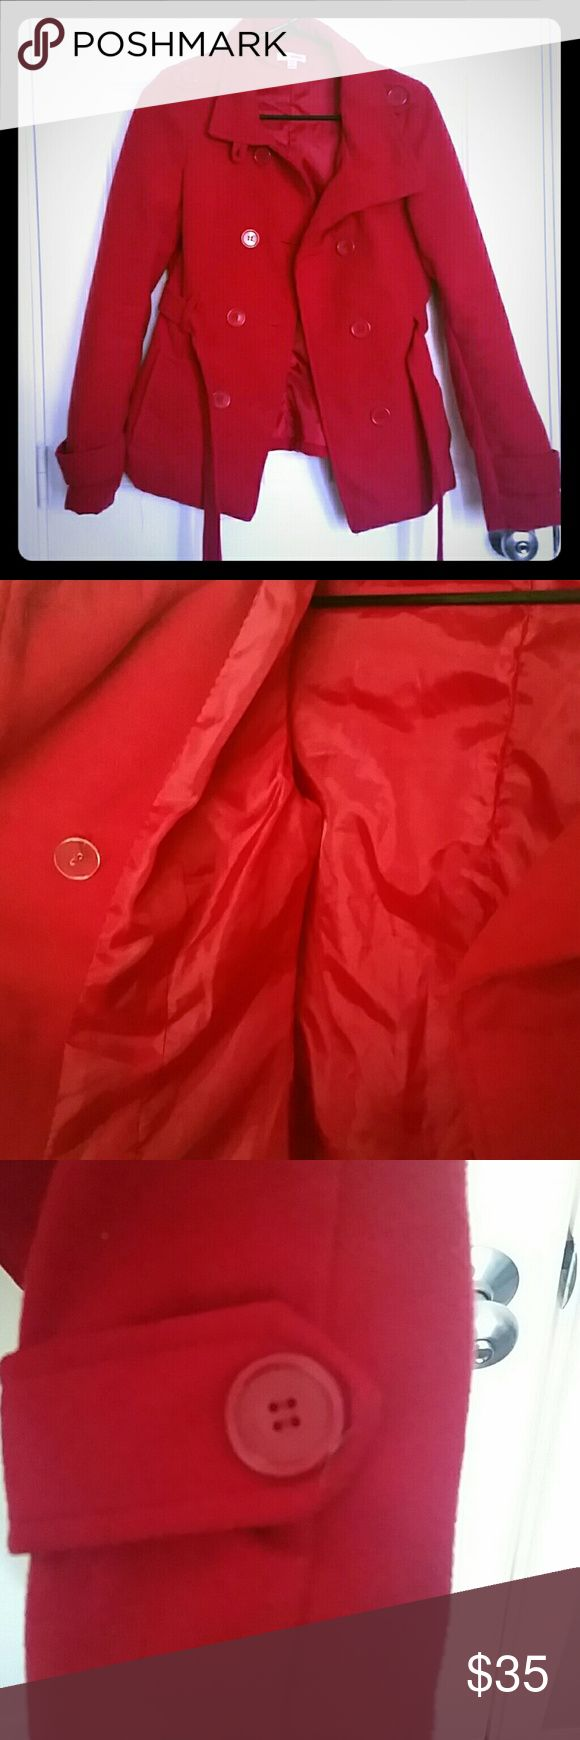 Red pea coat Super cute red pea coat. It's in fabulous conditions , worn only twice! Make me an offer :) BONGO Jackets & Coats Pea Coats